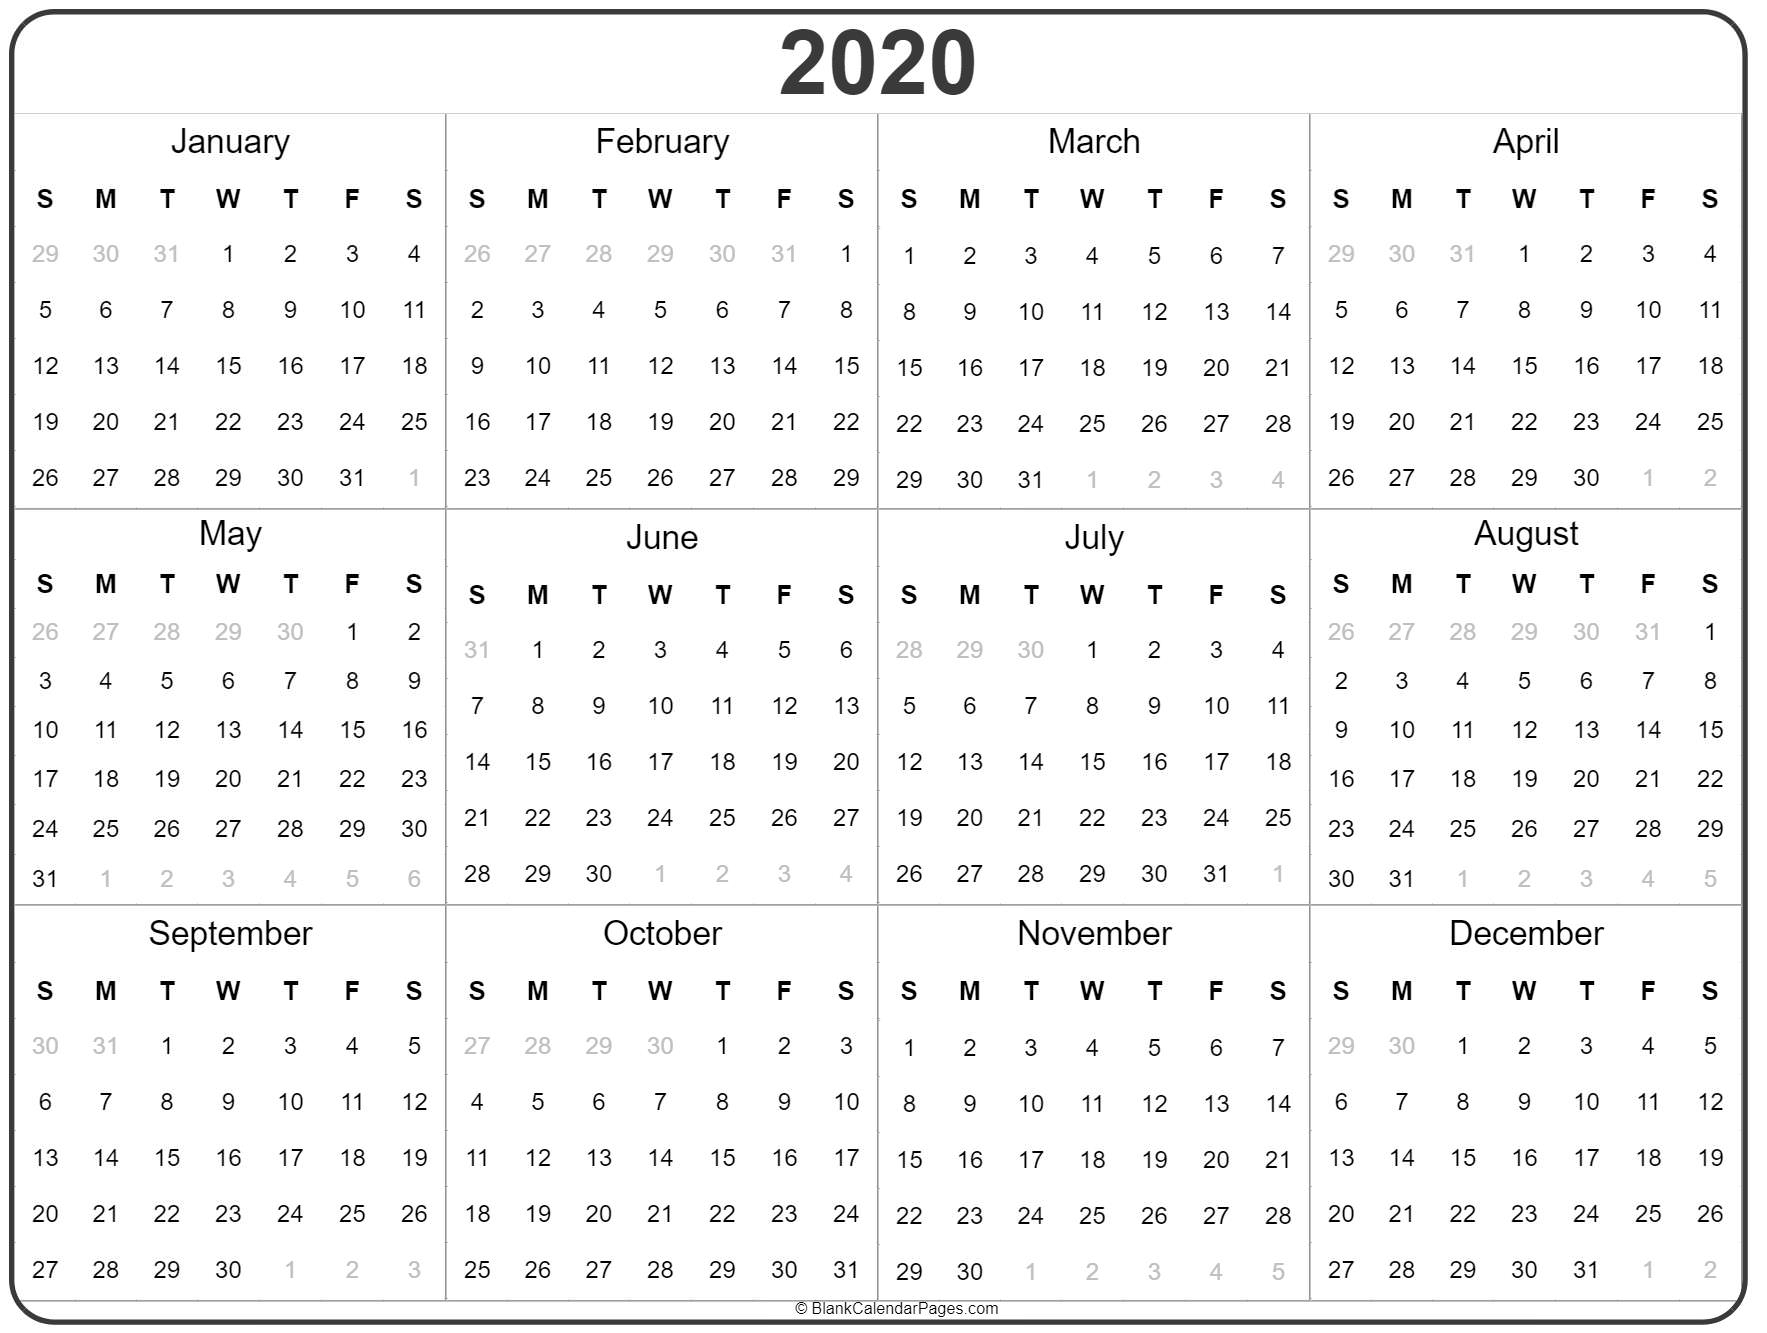 Printable 2020 Year Calendar  Yatay.horizonconsulting.co for 2020 At A Glance Calendar Printable